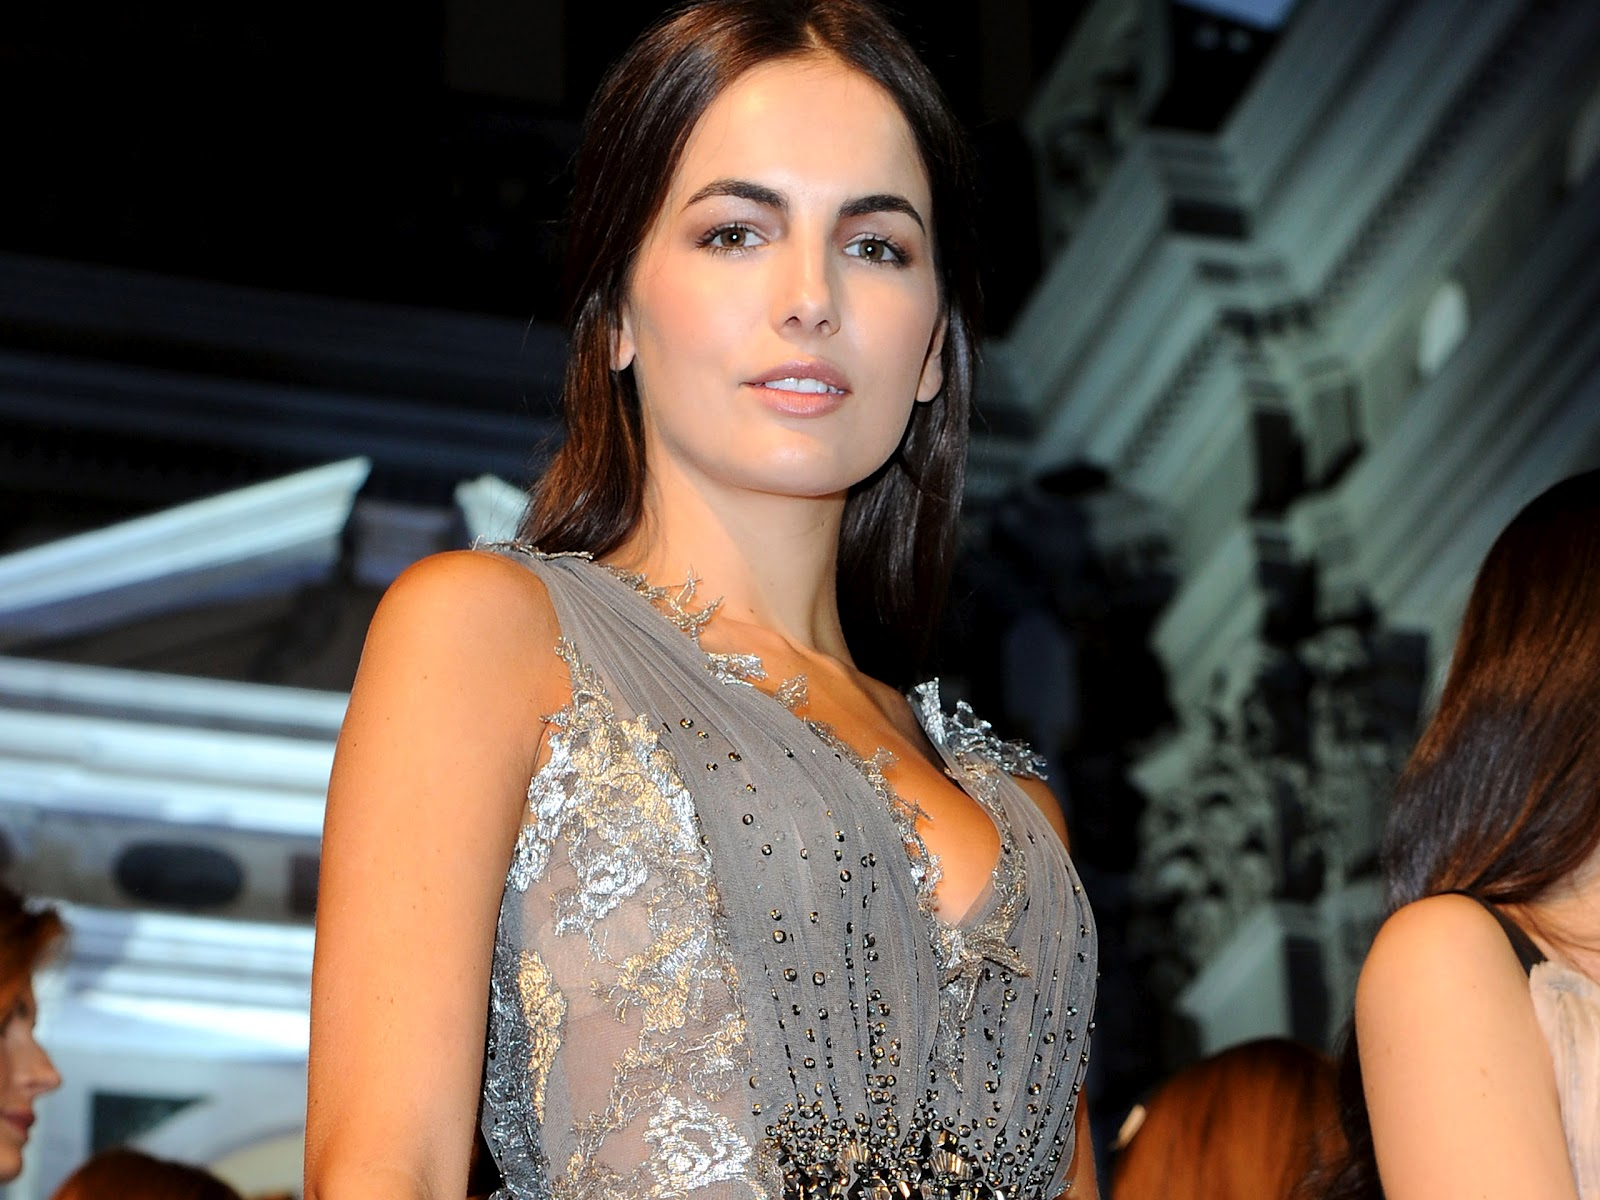 1600x1200 - Camilla Belle Wallpapers 24